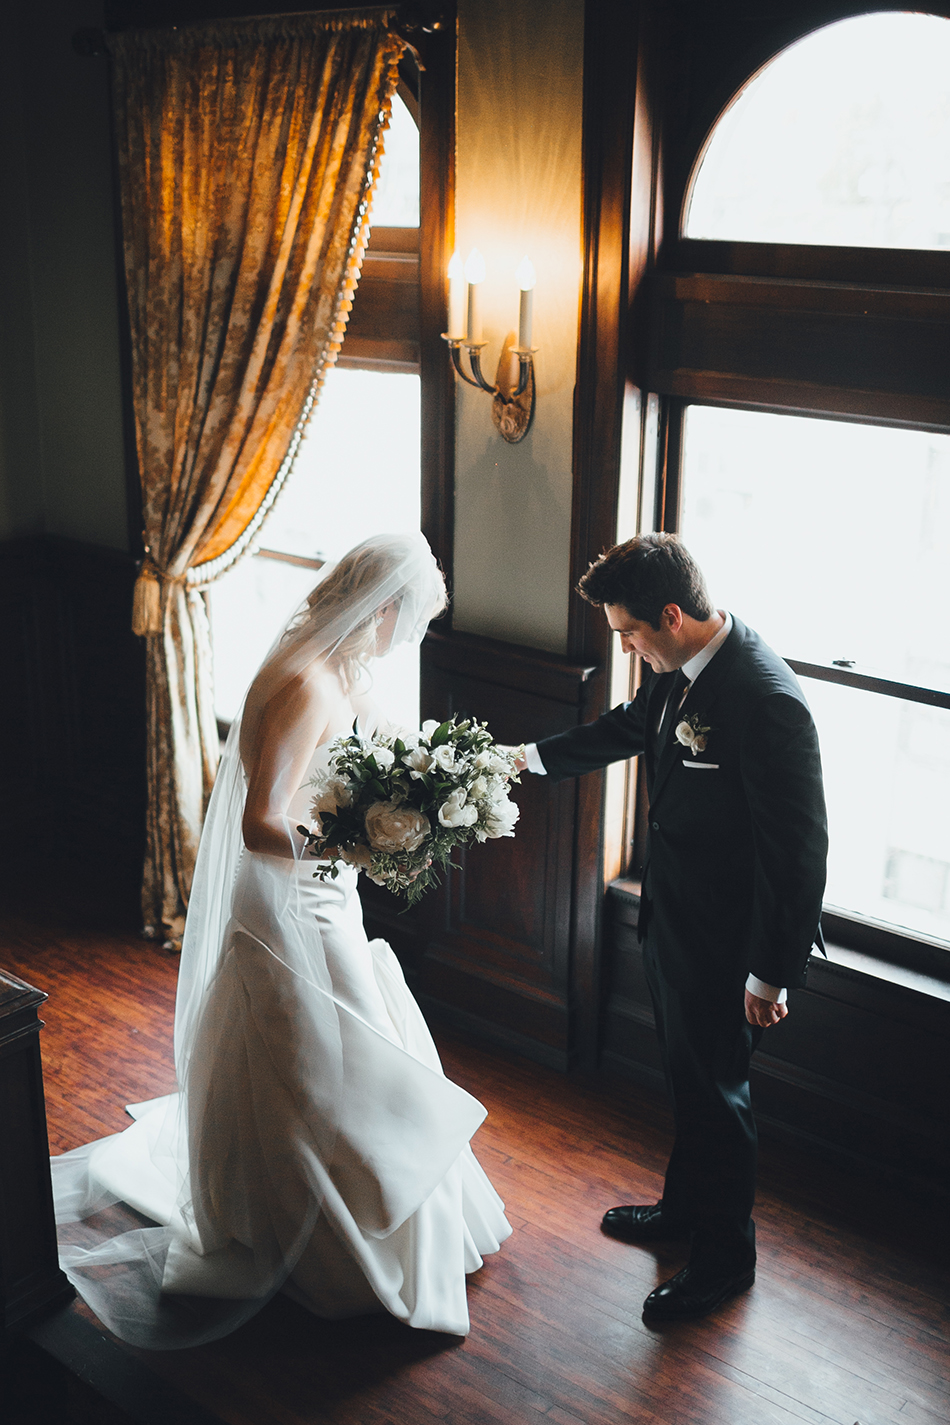 annamaier_realbride_minneapolis07.jpg